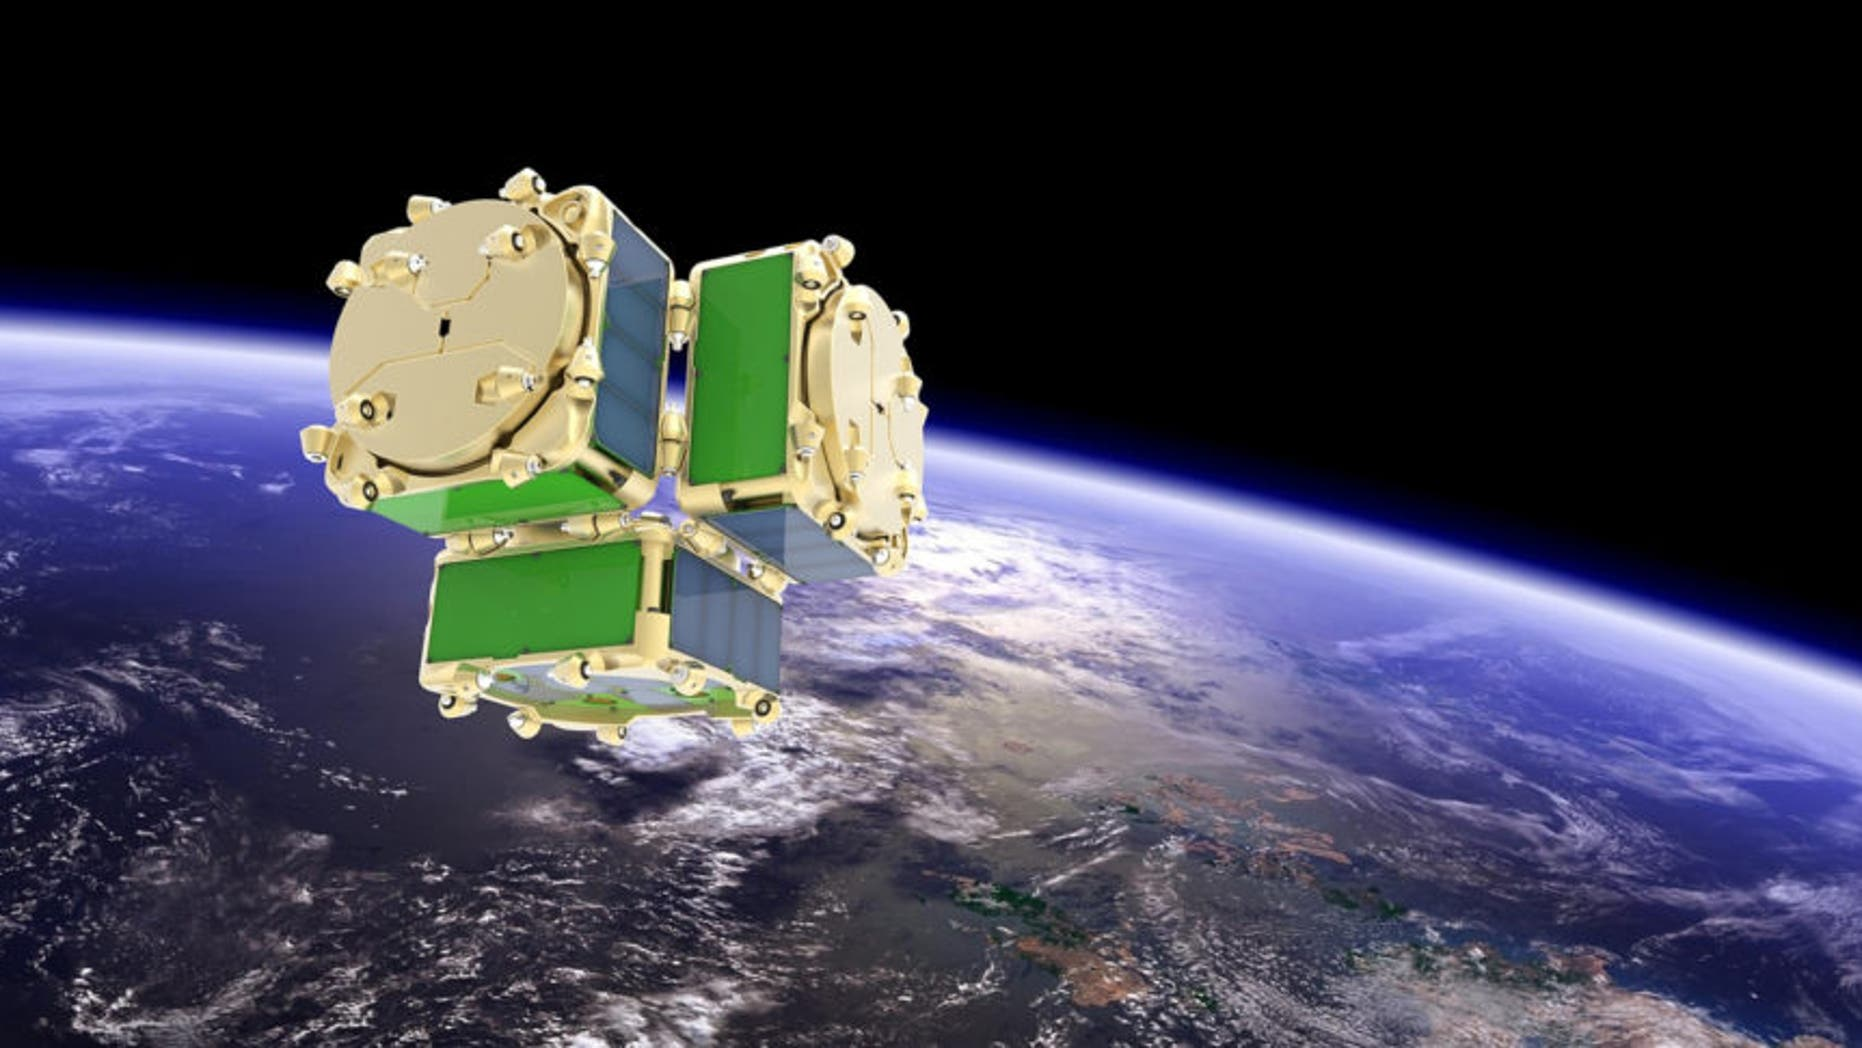 DARPA wants to launch its EXCITE spacecraft with experimental 'satlets' from NovaWurks on an Indian PSLV rocket.